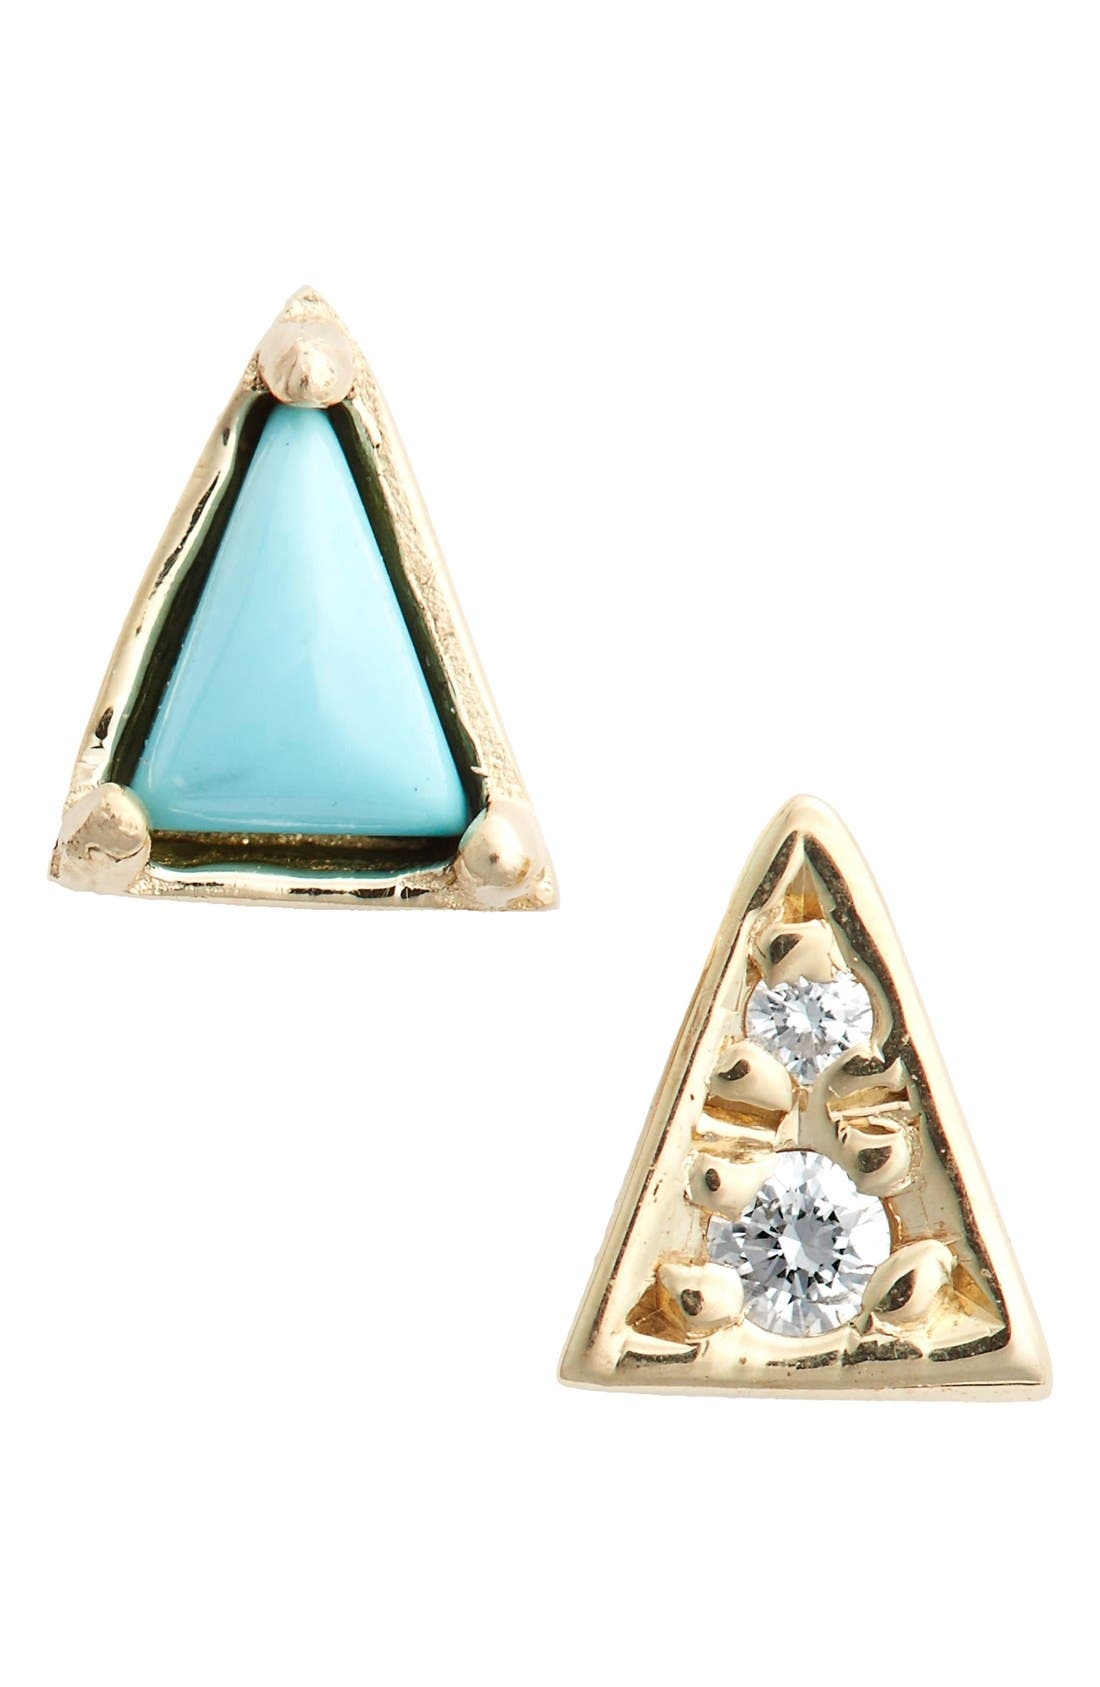 Mismatch Triangle Turquoise Stud Earrings,                             Main thumbnail 1, color,                             710